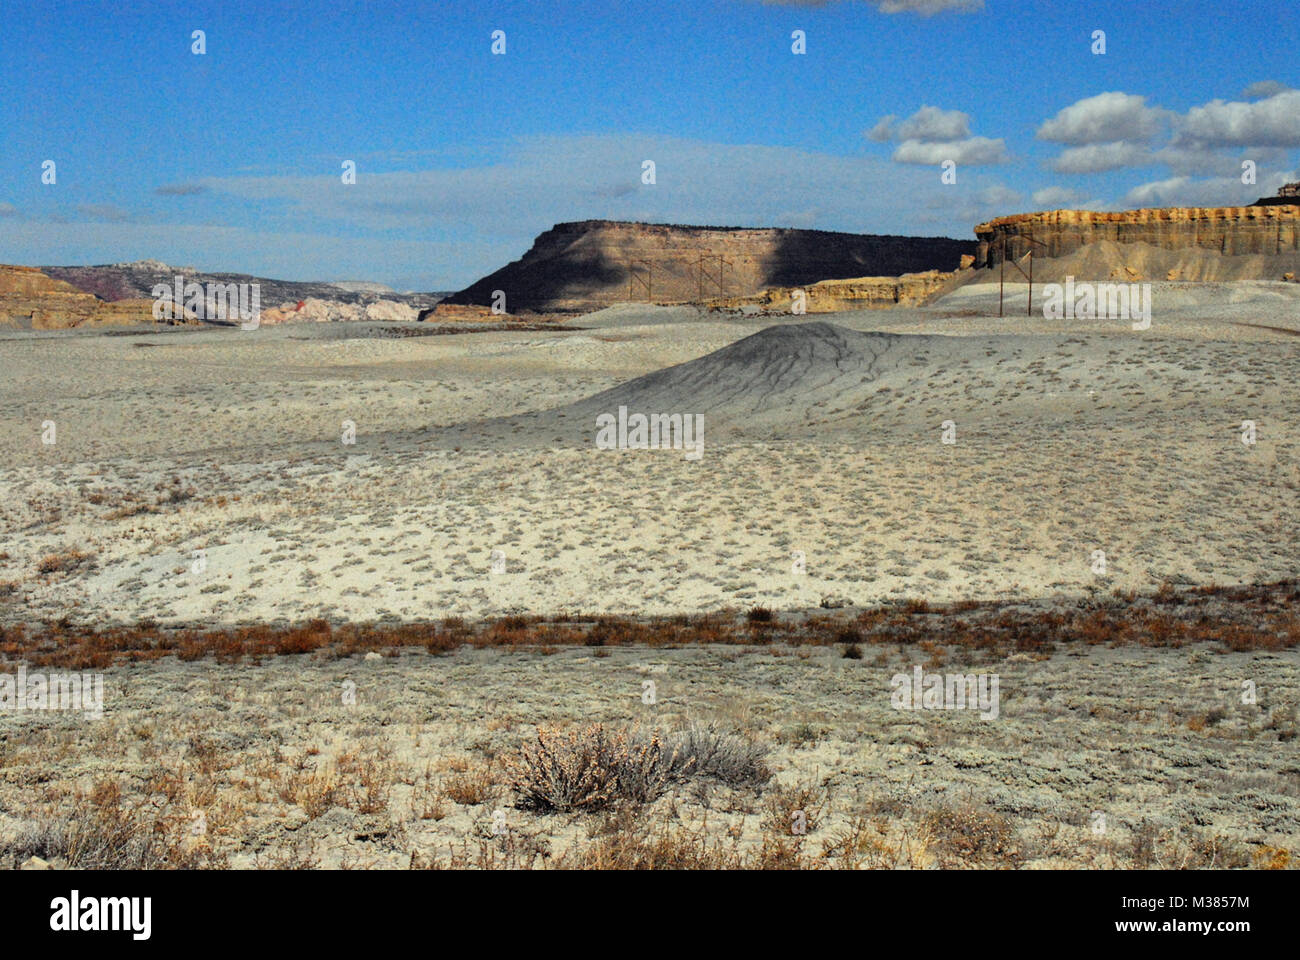 A panoramic landscape of various beautiful mountains and mesas in the Arizona desert Stock Photo